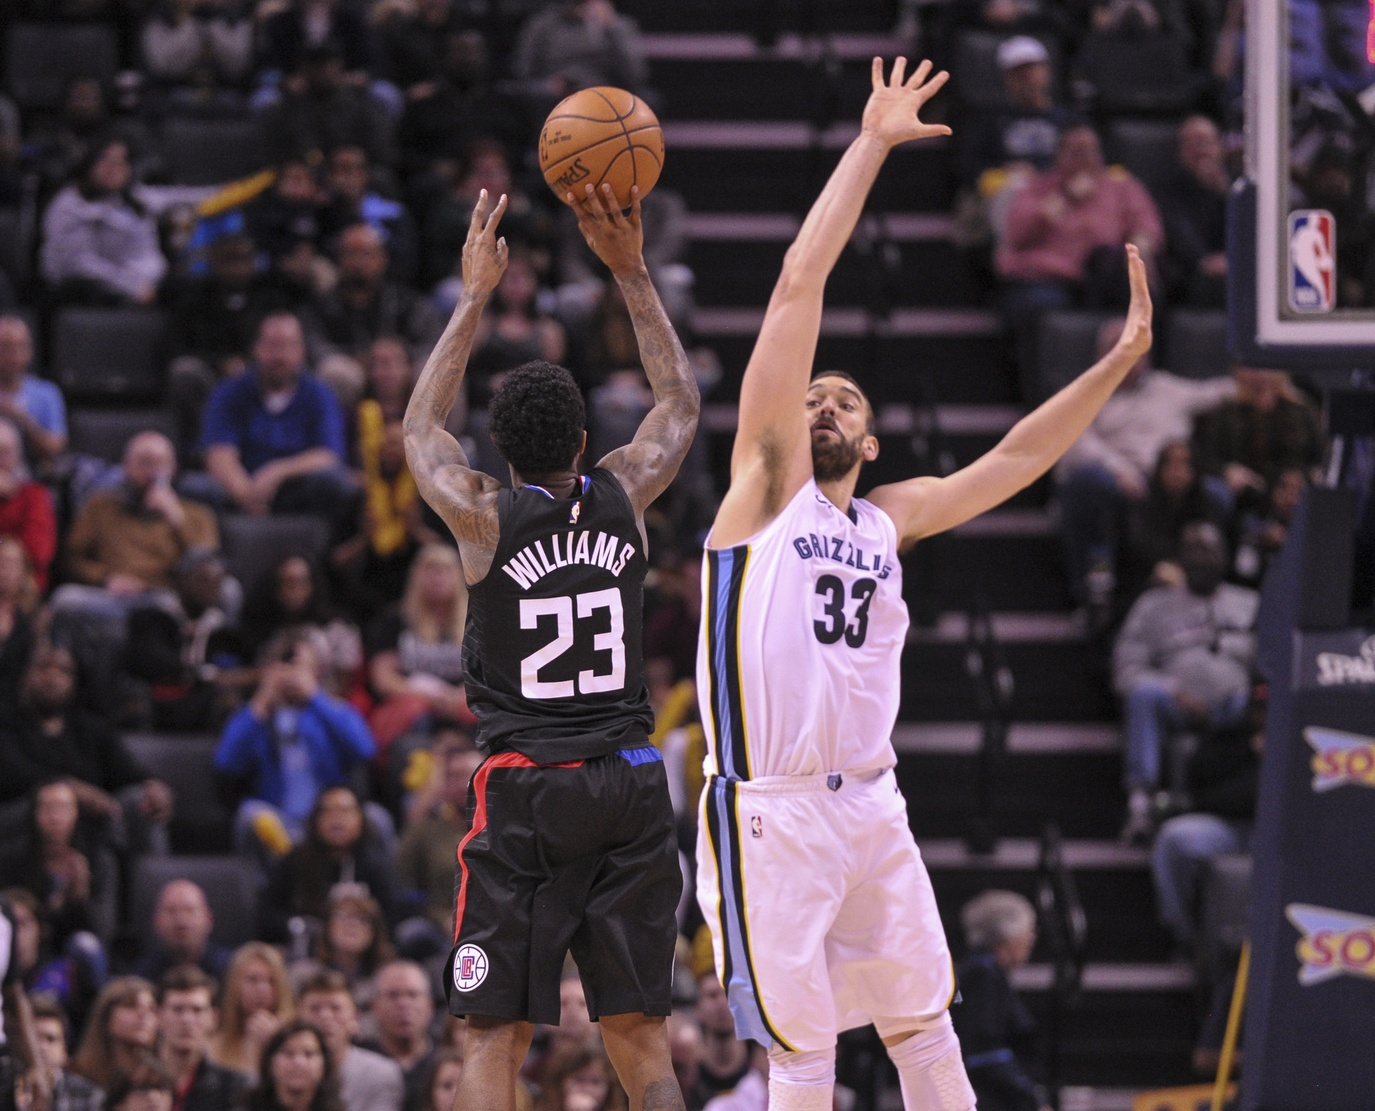 Clippers Look to Avenge Losses Against Grizzlies